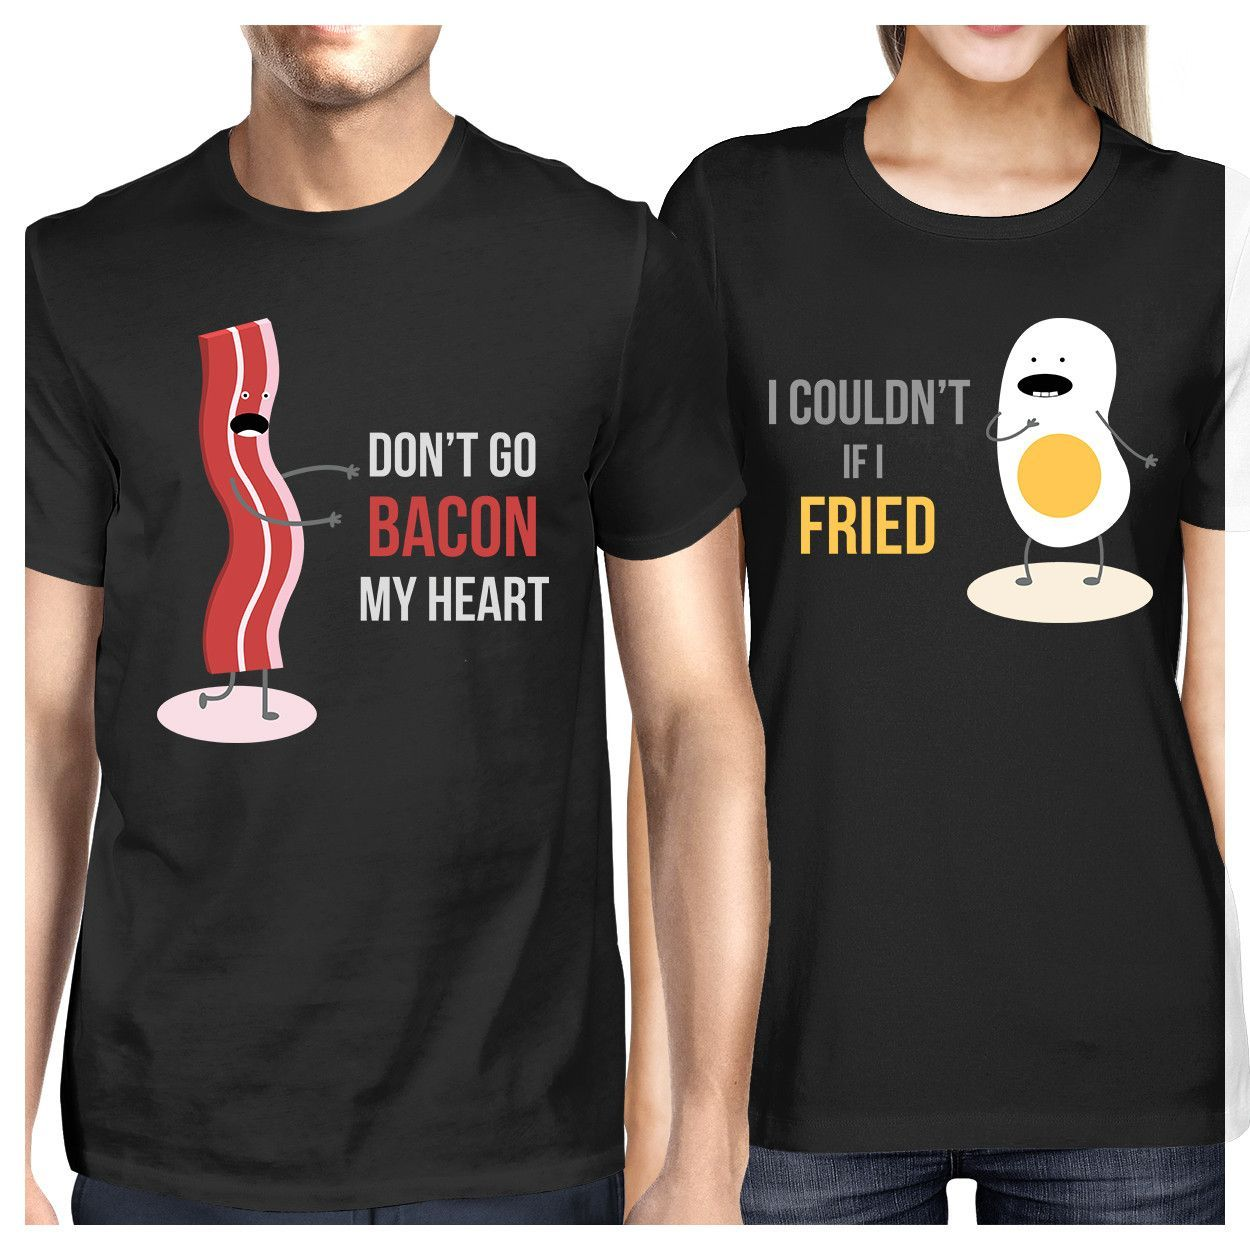 eb60e65090 Don't Go Bacon My Heart, I Couldn't If I Fried Matching Couple Shirts (his  & hers Set) - 365INLOVE